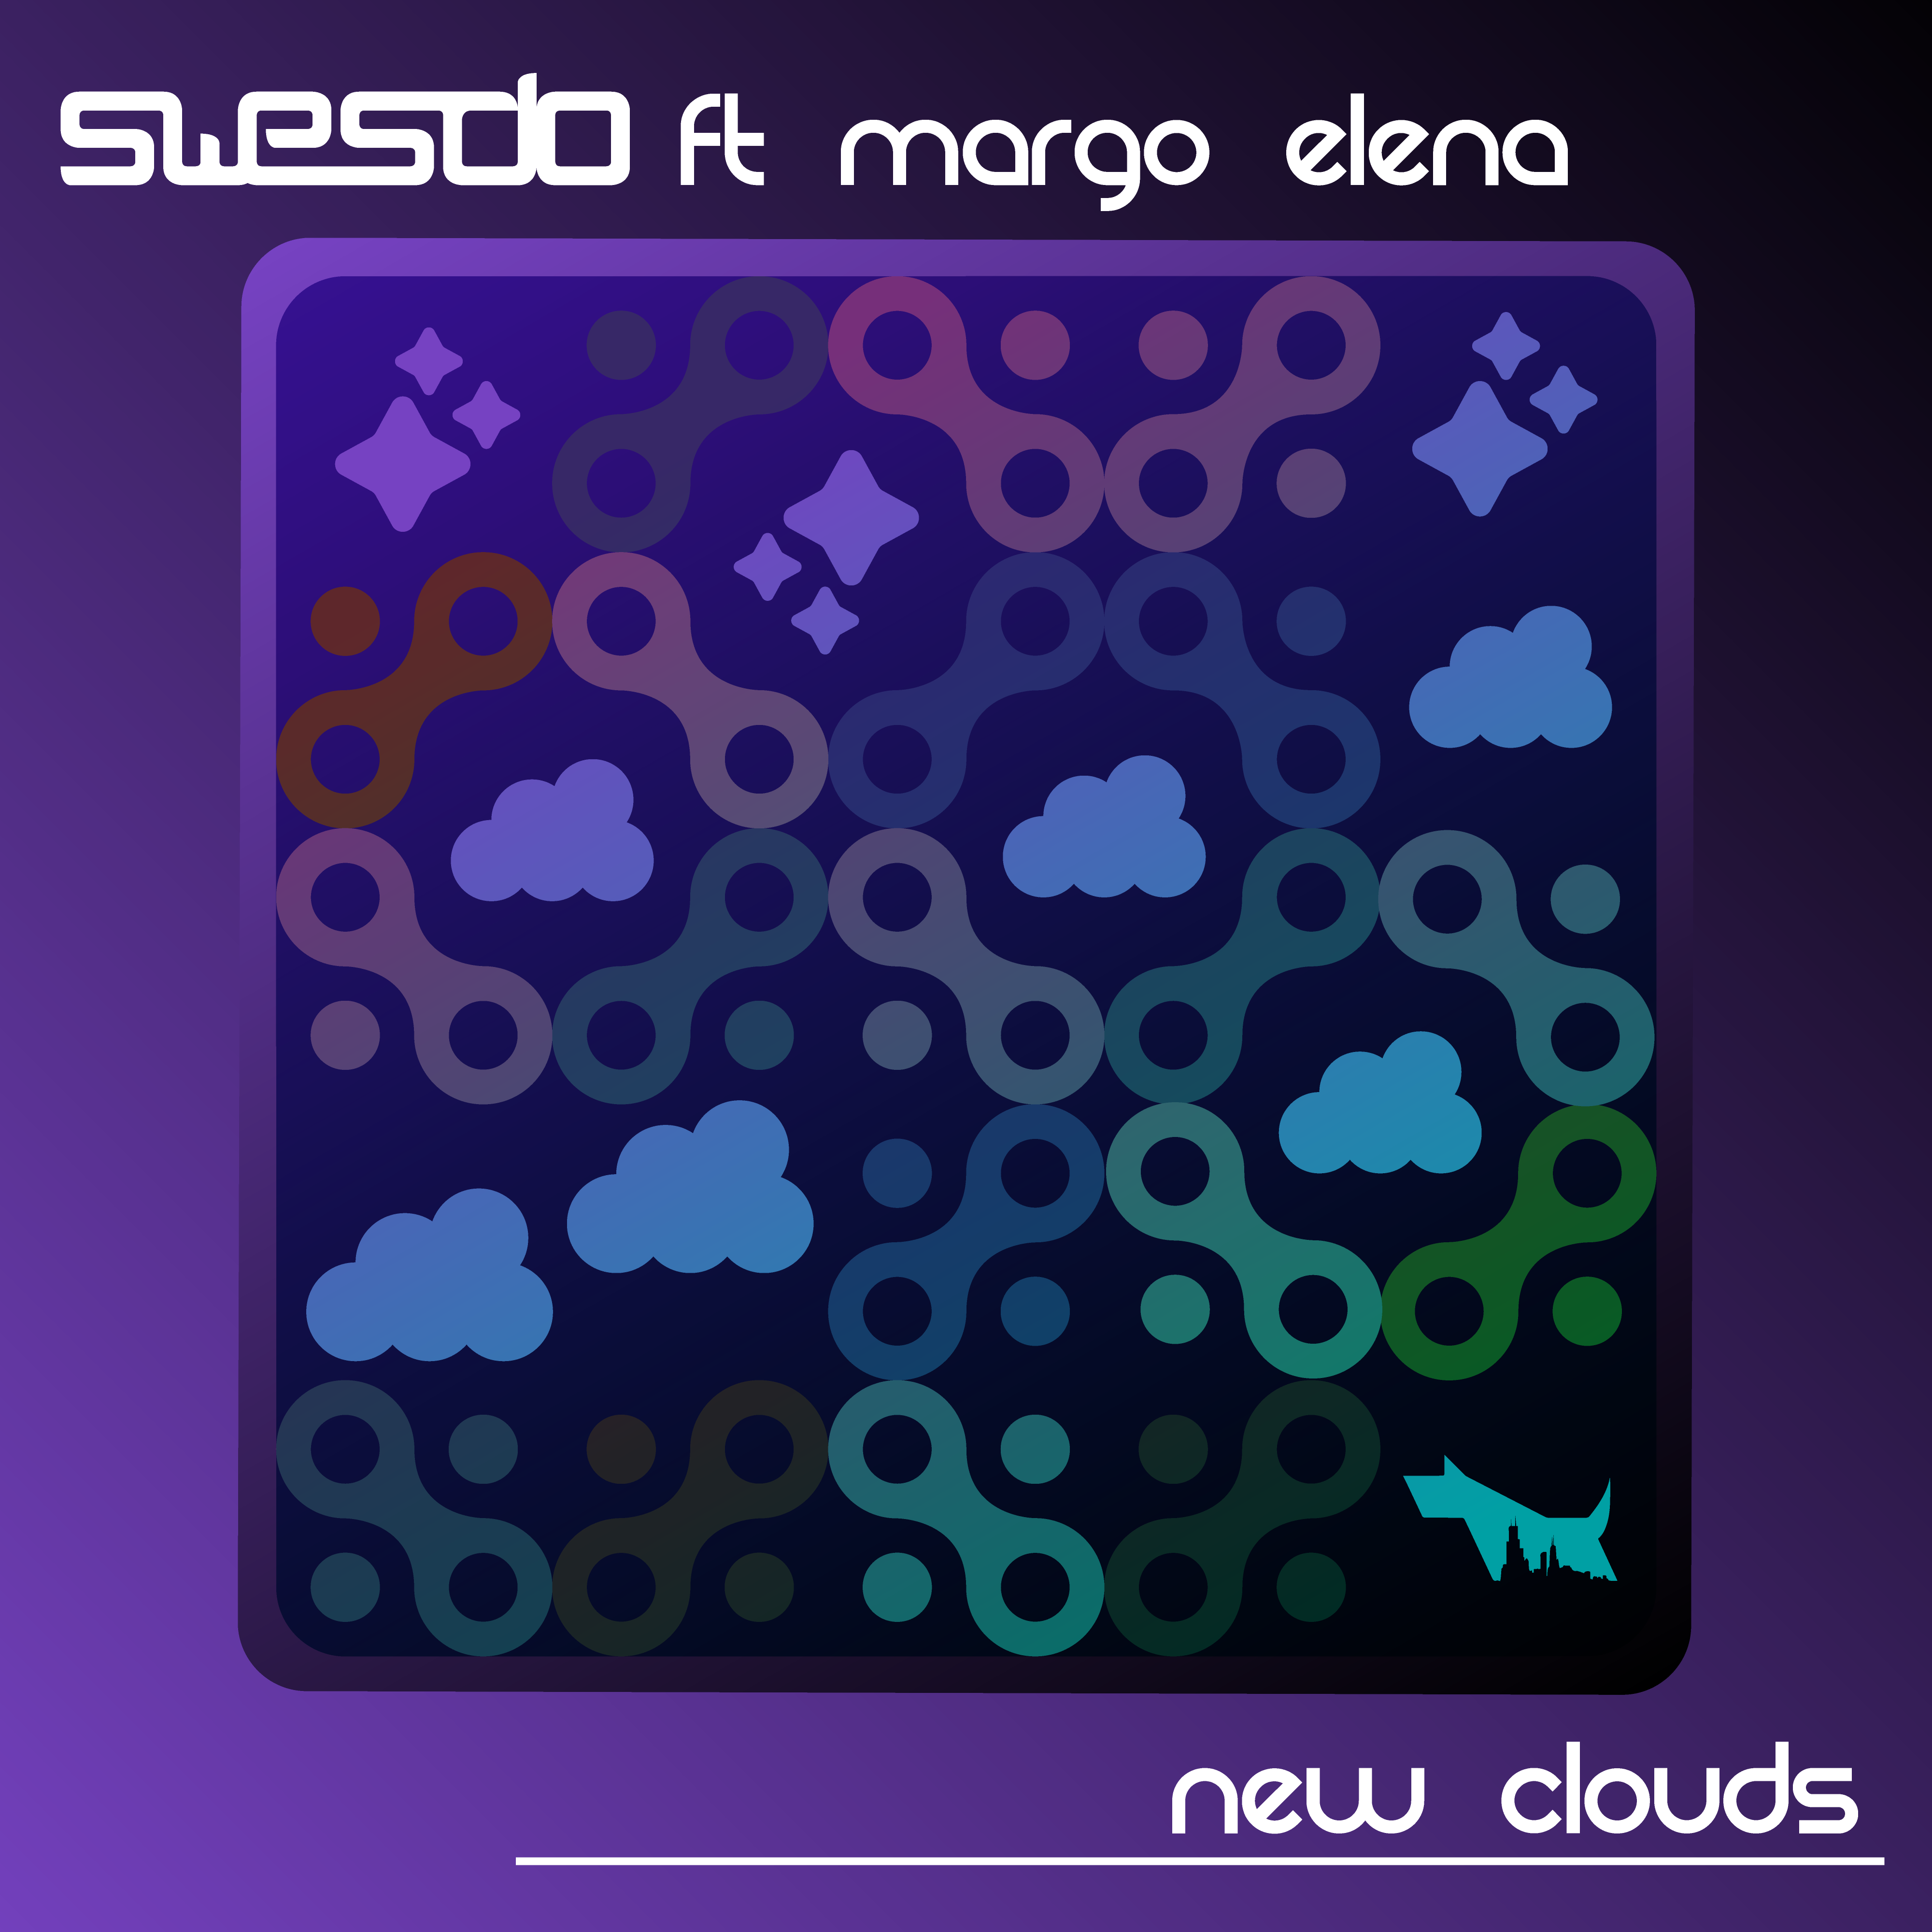 New Clouds